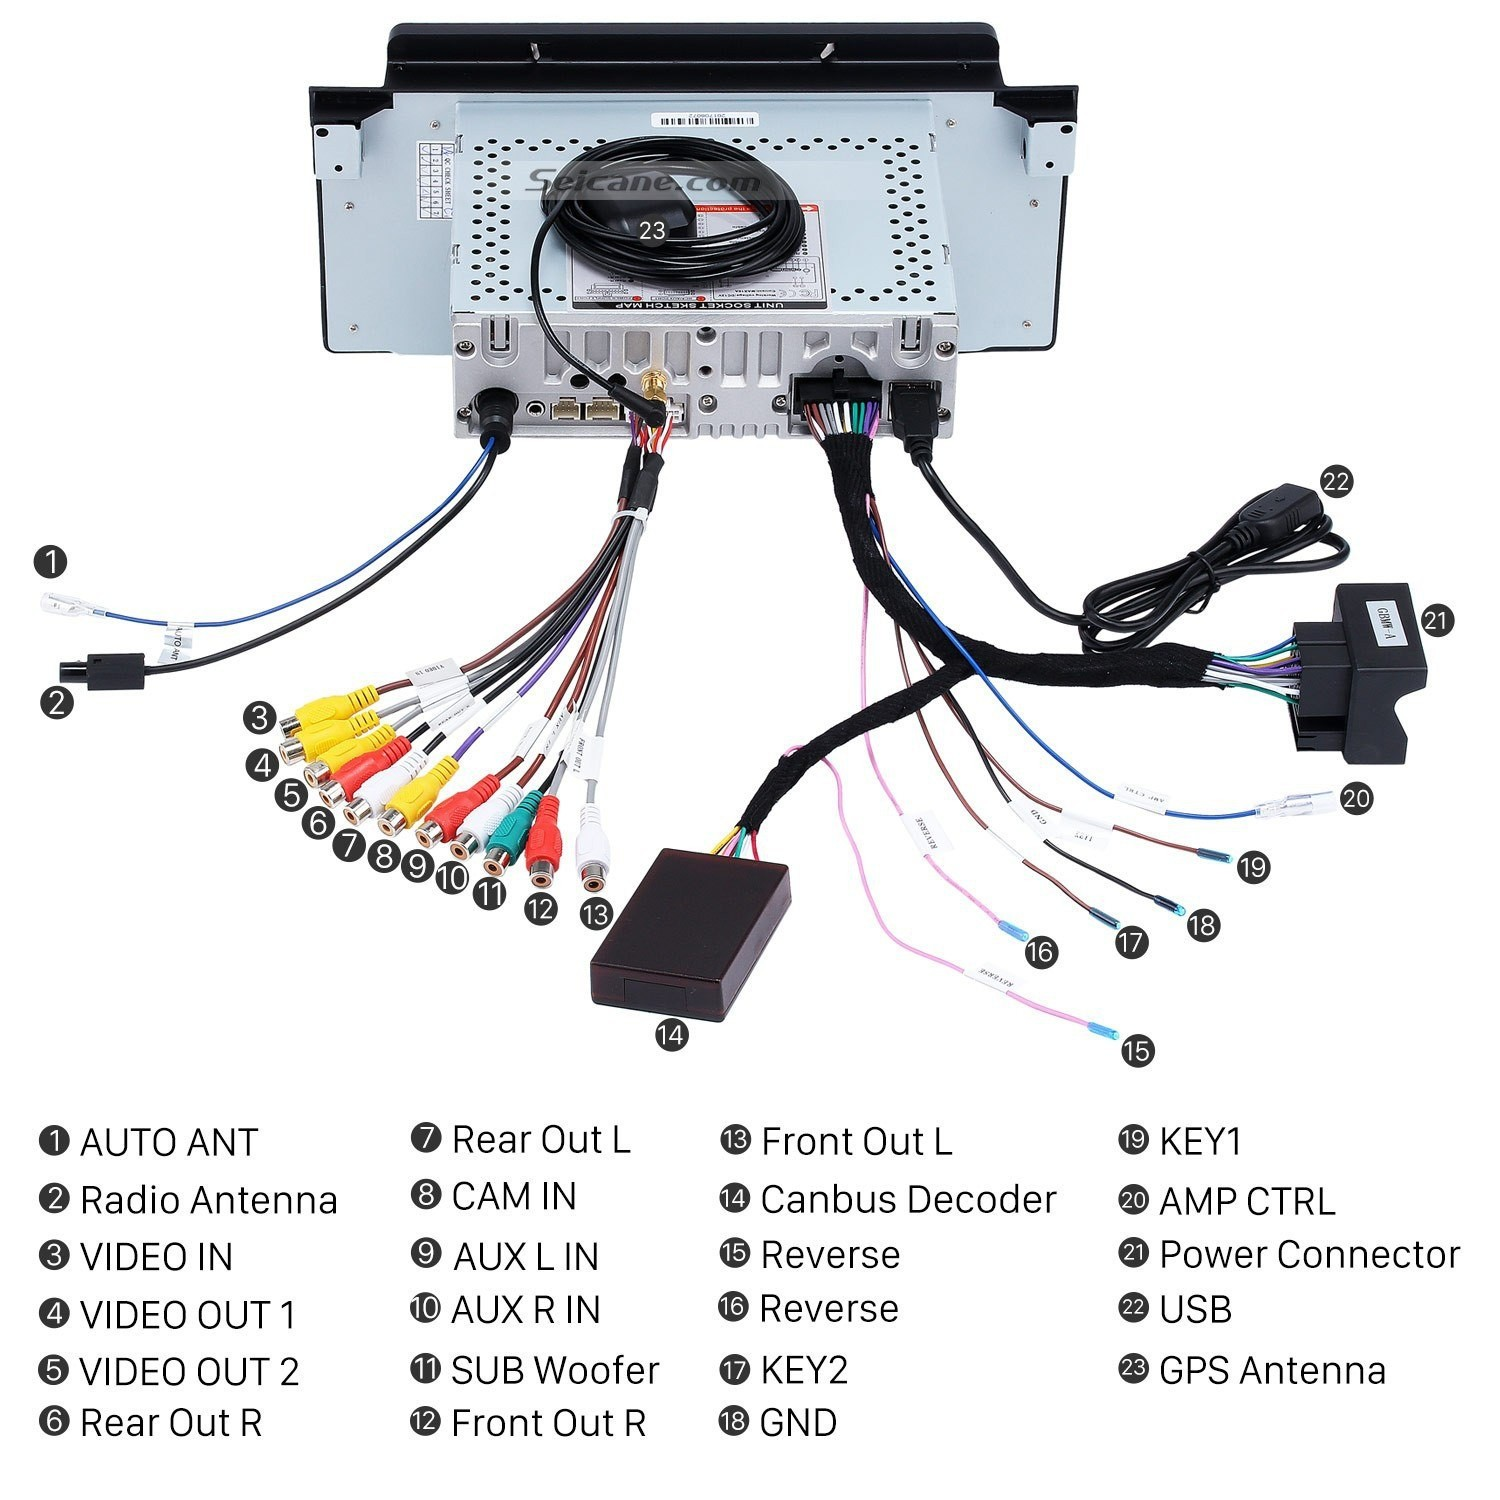 Ac Adapter Wiring Diagram Refrence The Wiring Diagram Amazing Light Wiring Diagram Best Inch 2000